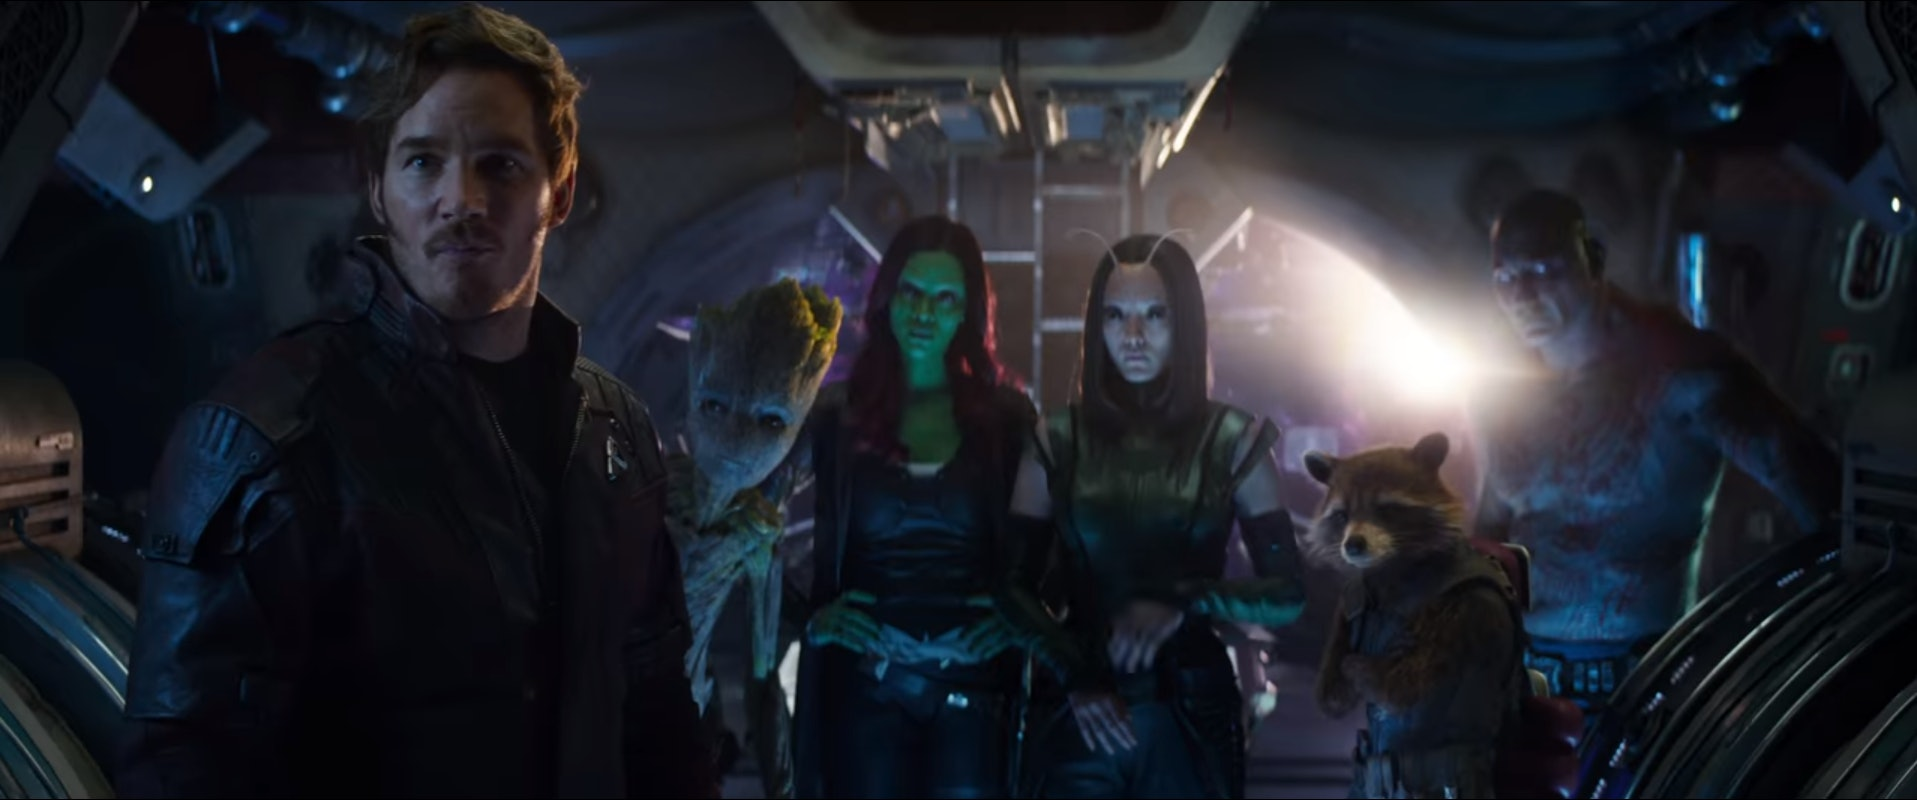 Image of: Dramabeans 11 avengers Infinity War Pop Culture References That Were So Sneaky You May Have Missed Them Den Of Geek 11 avengers Infinity War Pop Culture References That Were So